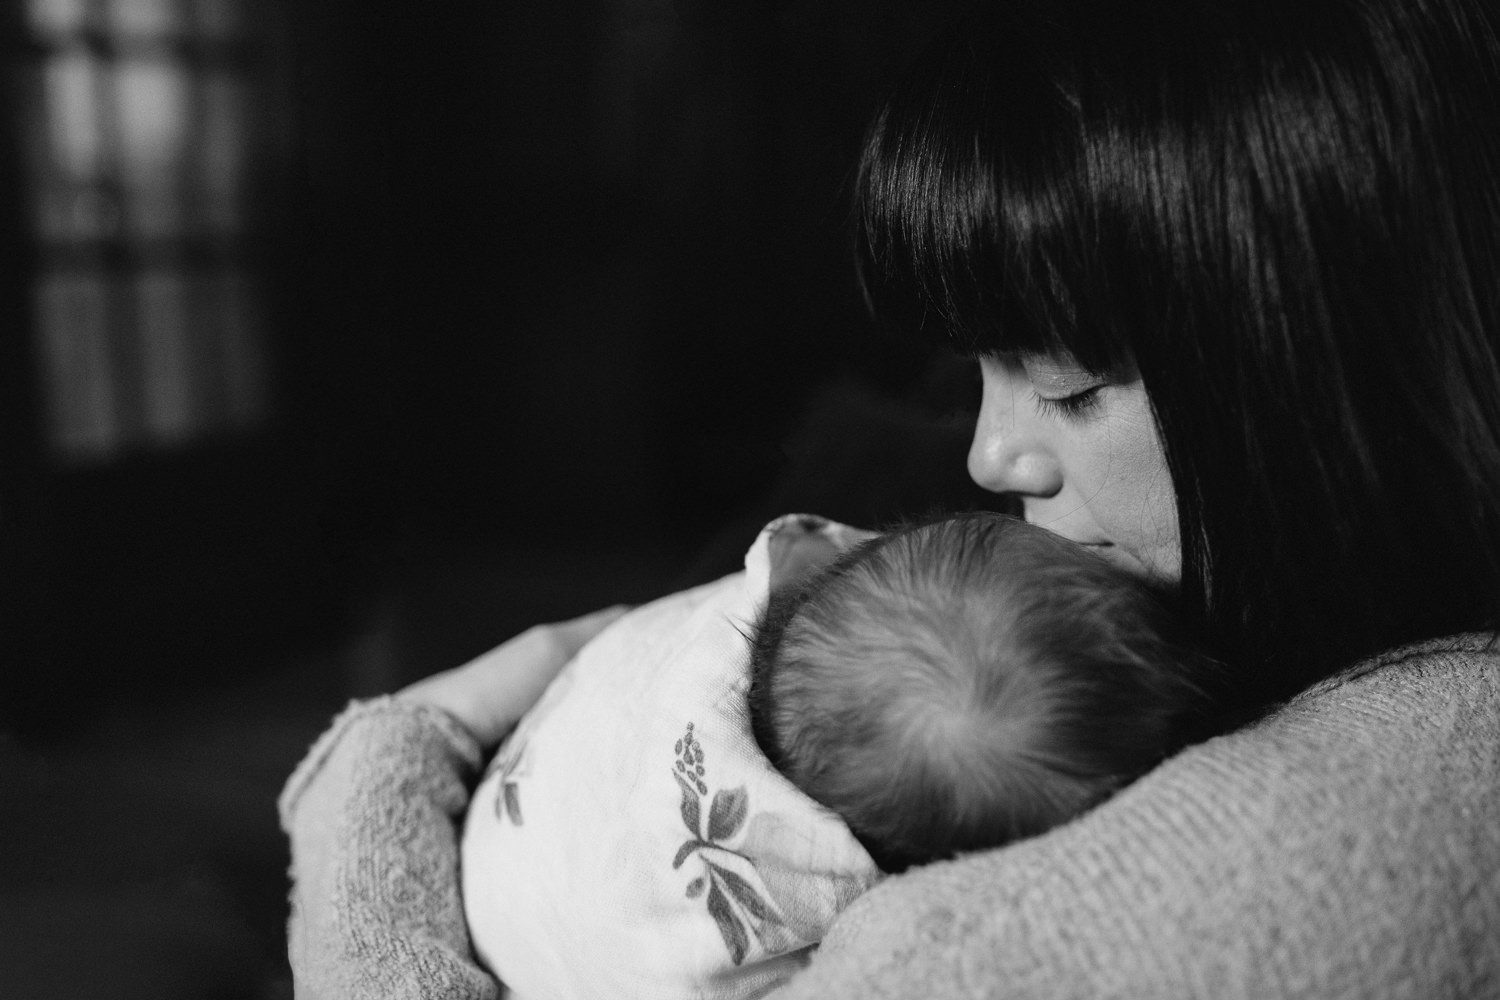 brunette mother holds 5 week old swaddled, sleeping baby girl - Stouffville lifestyle photography